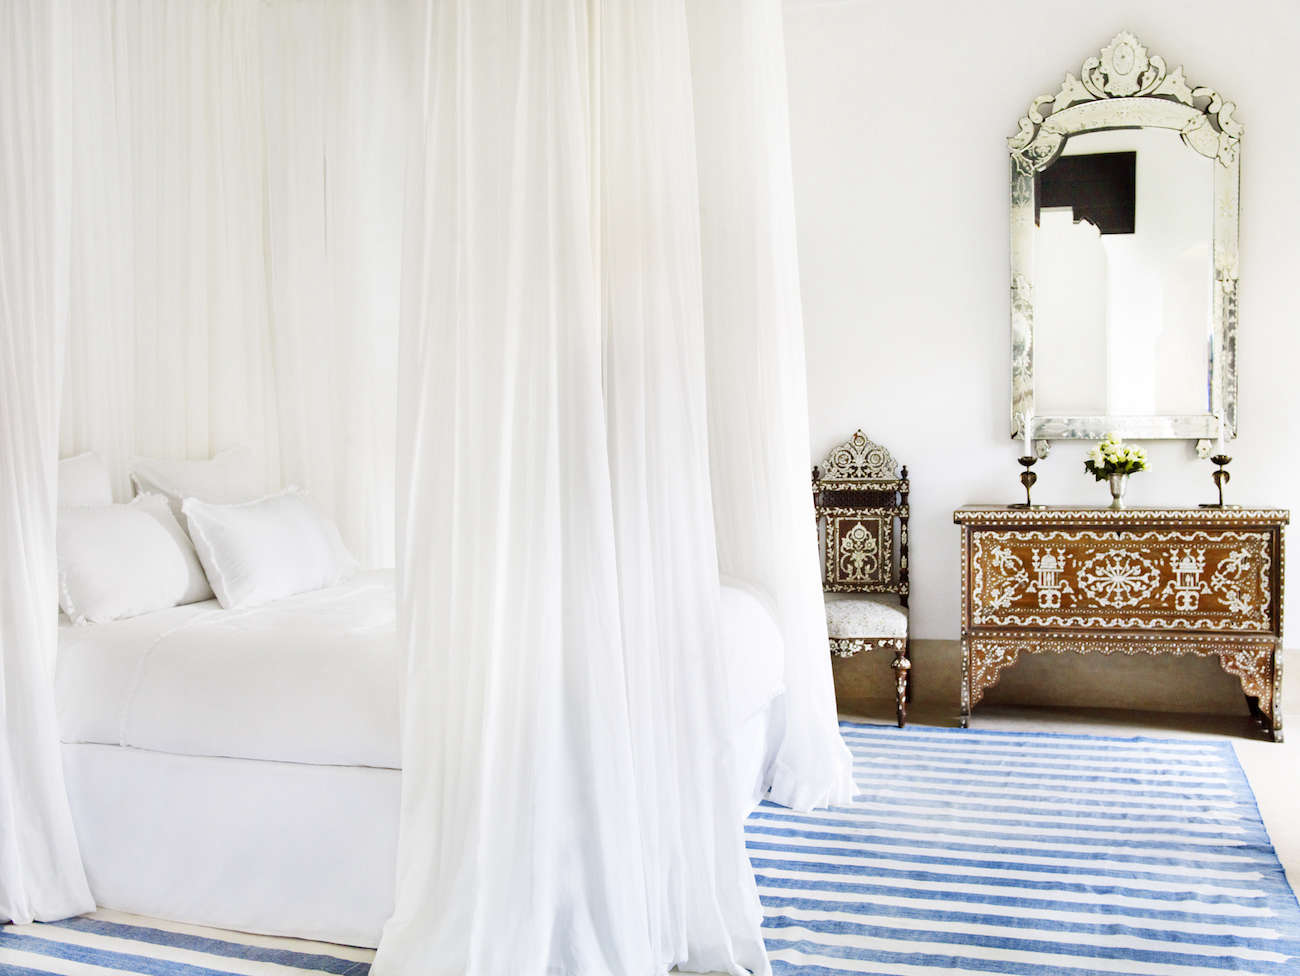 white-bed-curtains-blue-white-striped-rug-silver-mirror